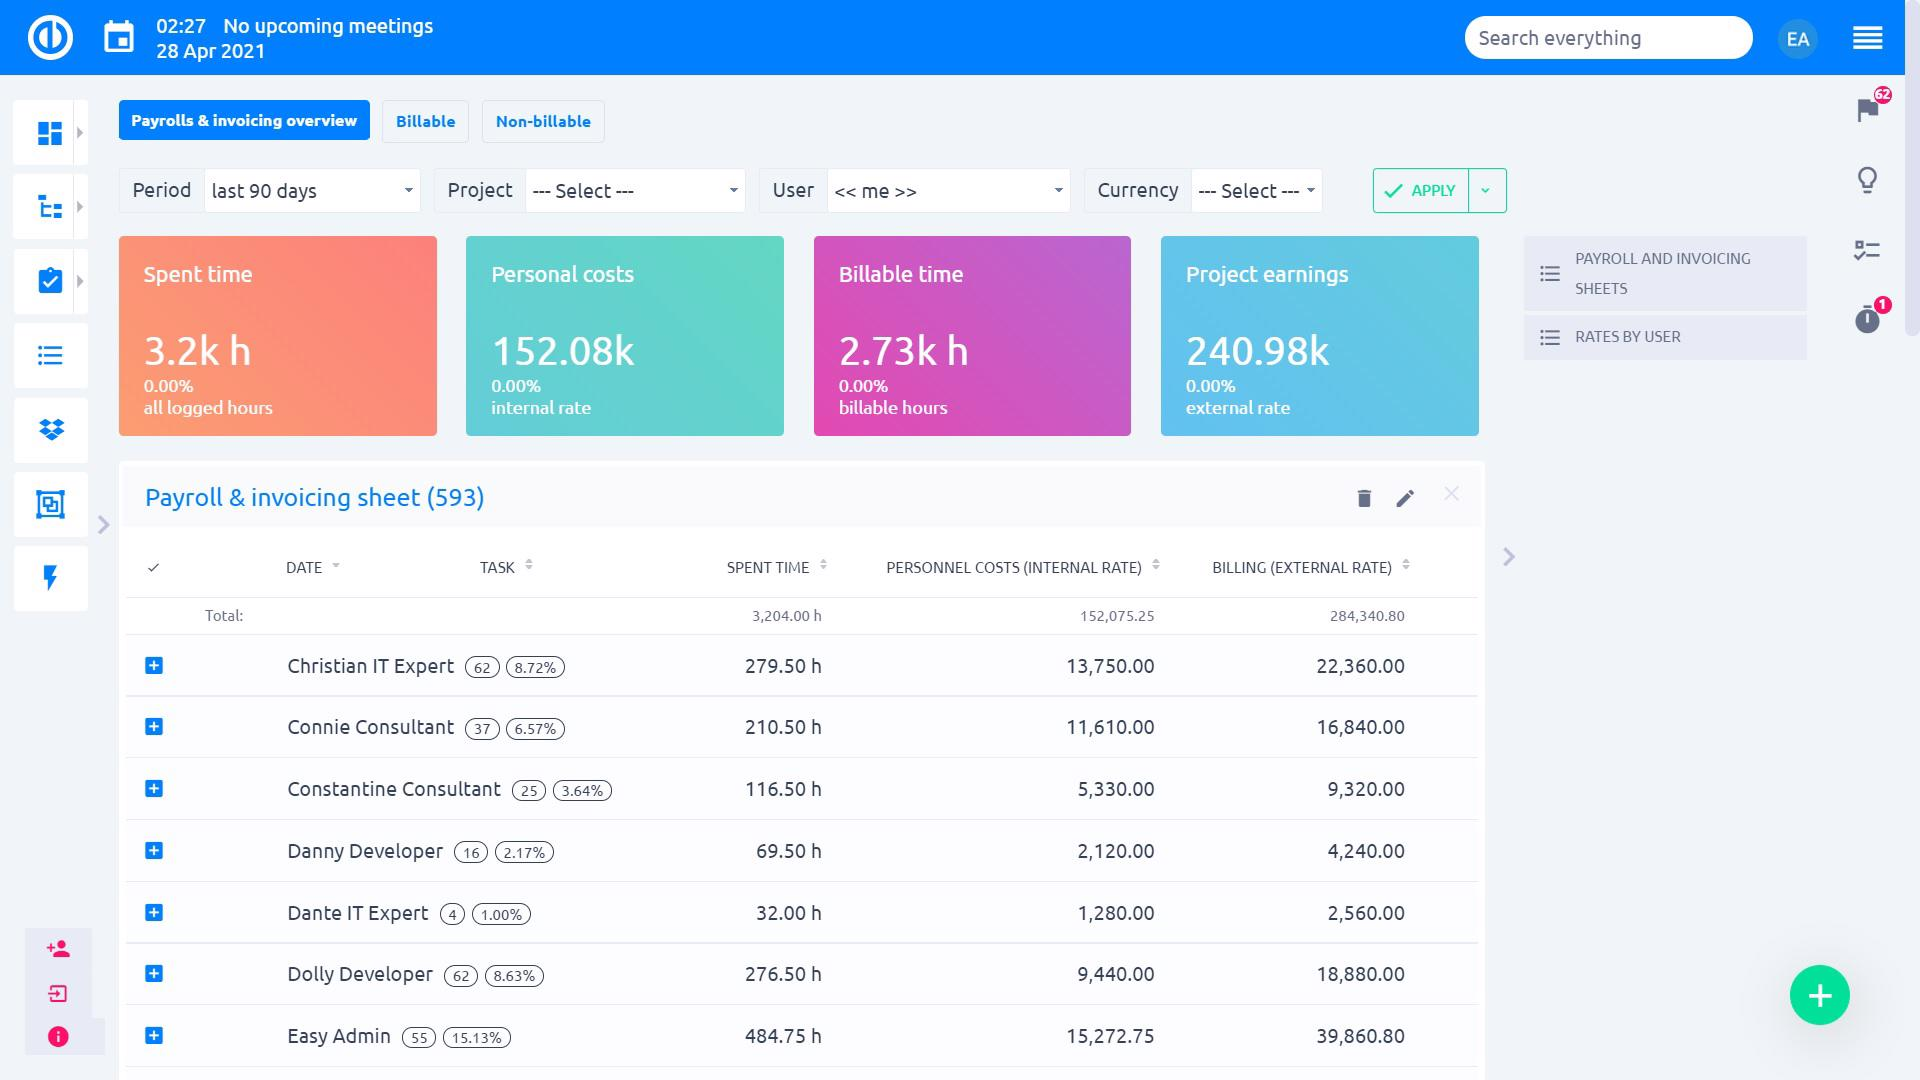 Easy Redmine 2019 - Payroll and Invoicing Dashboard